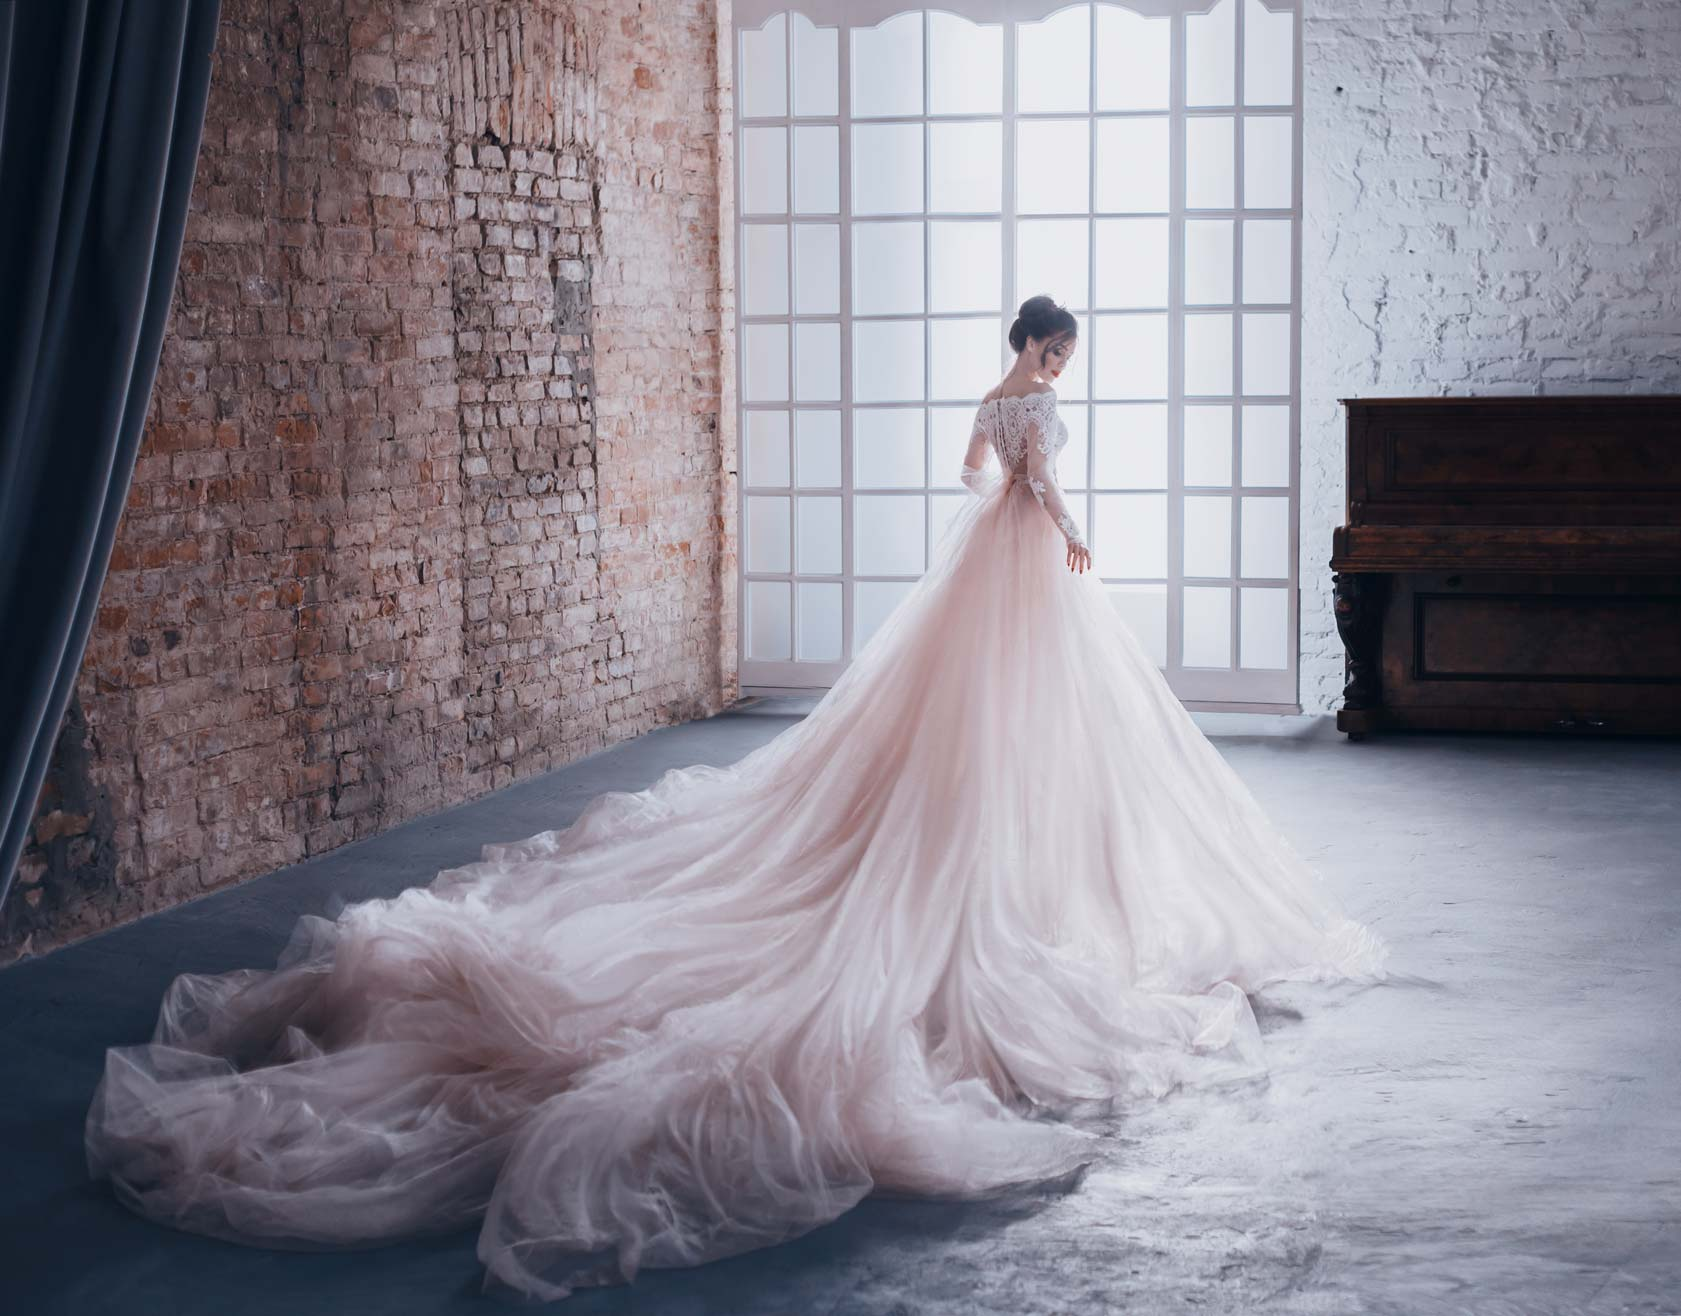 Perfect Pairings How To Match Bouquets To Wedding Dress Styles